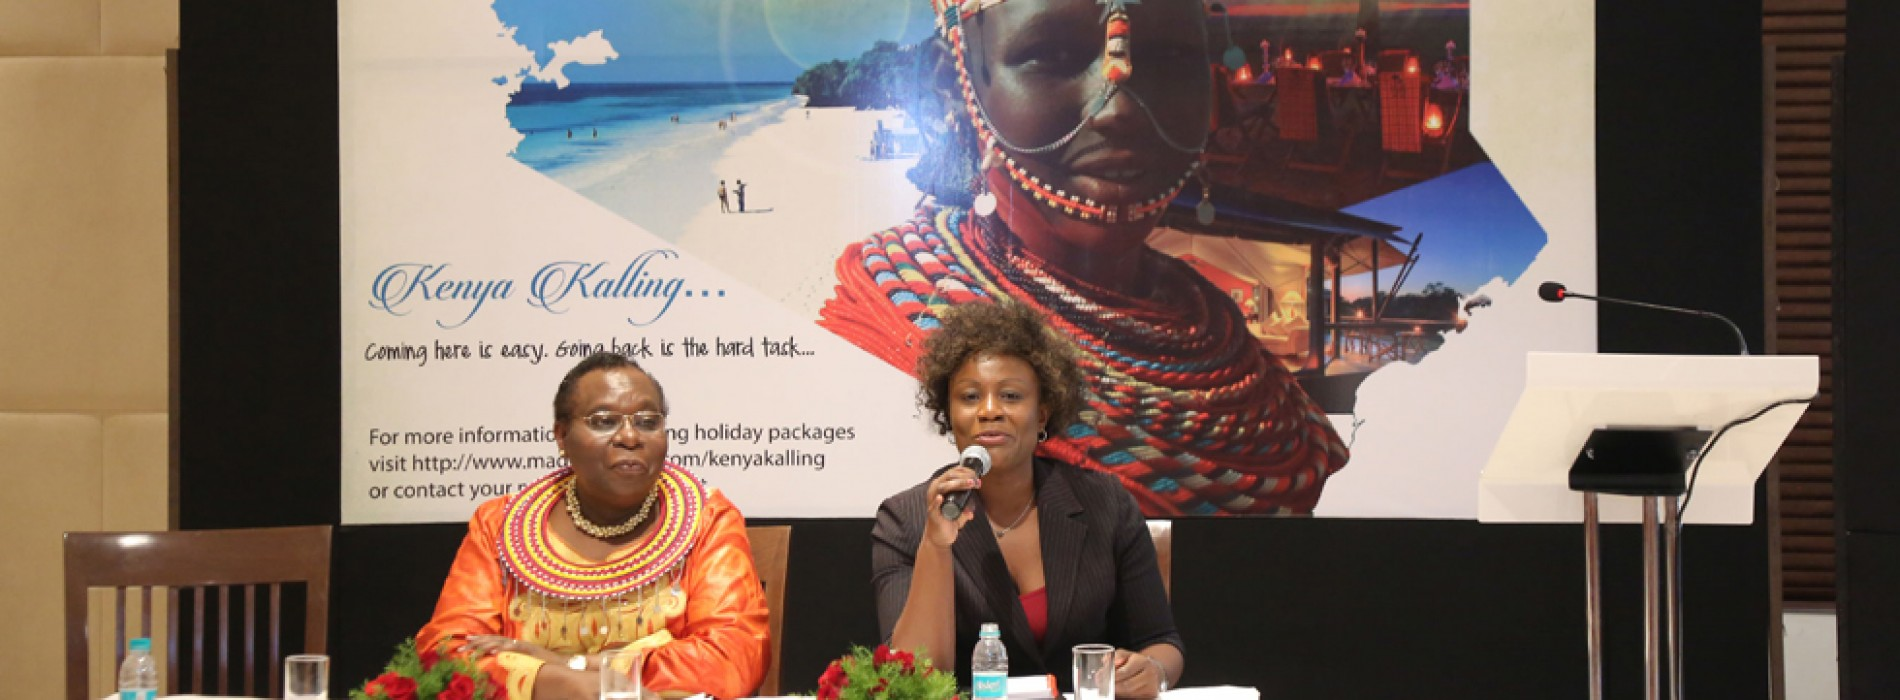 Kenya Kalling Campaign targets one lakh visitors